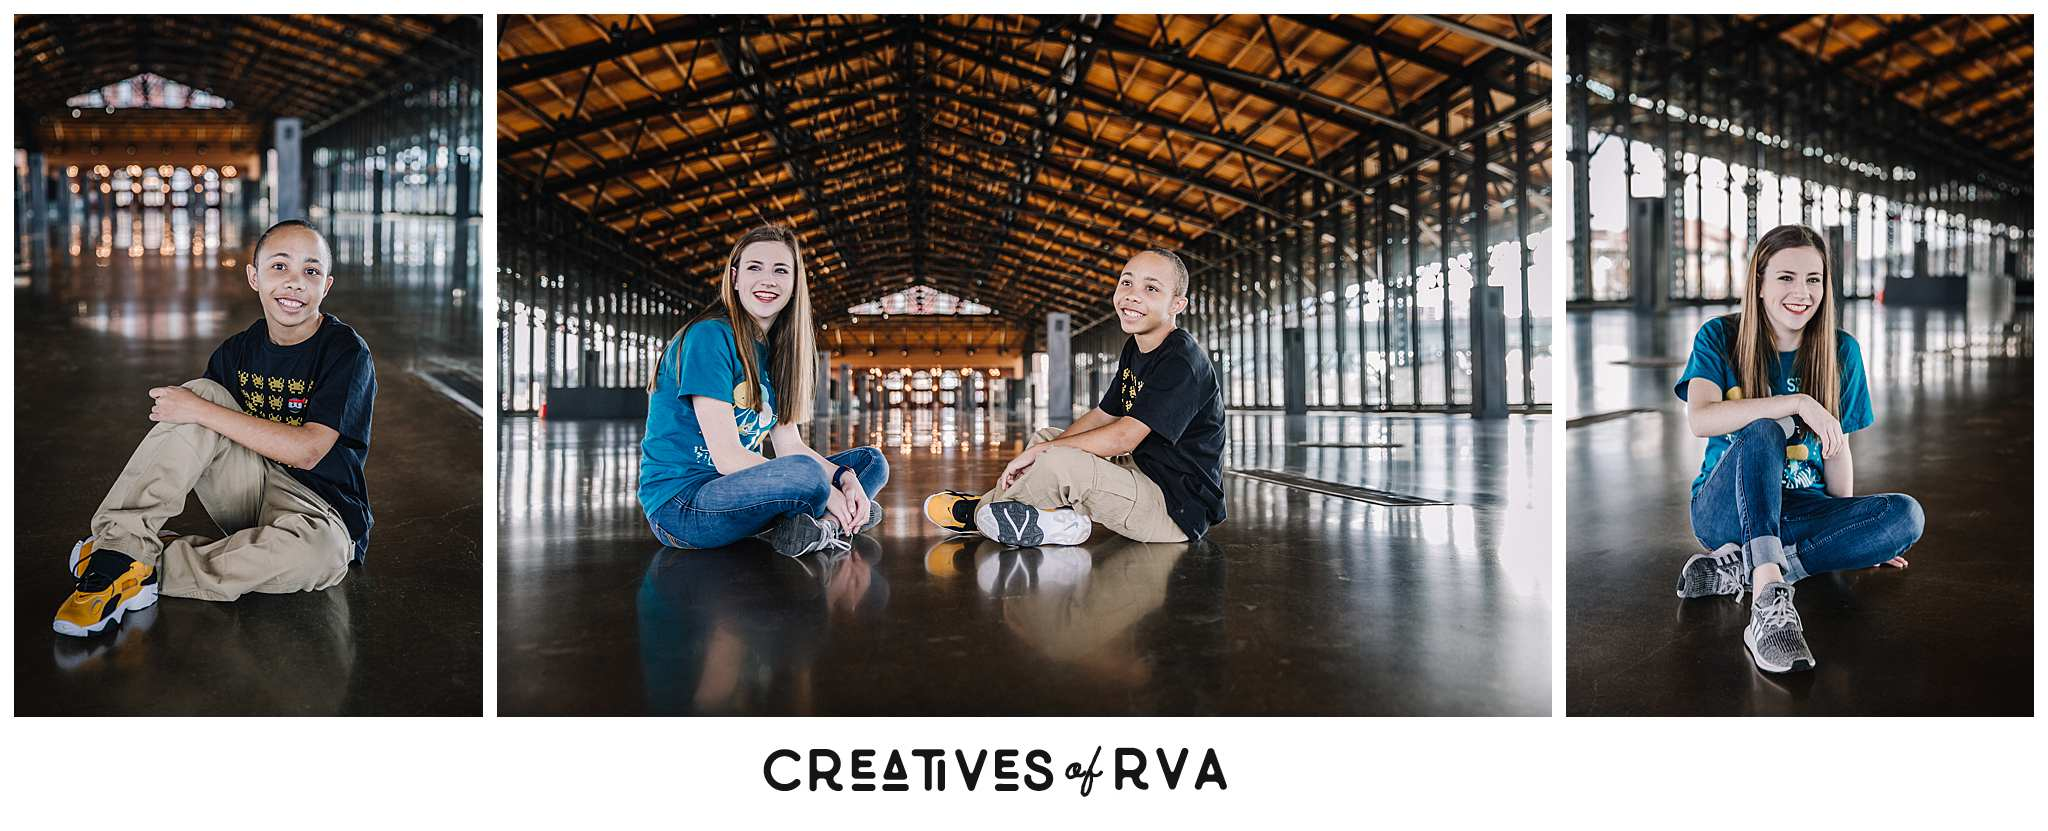 Main-Street-Station-Creatives-of-RVA-Pictures-LIVEART_0001.jpg